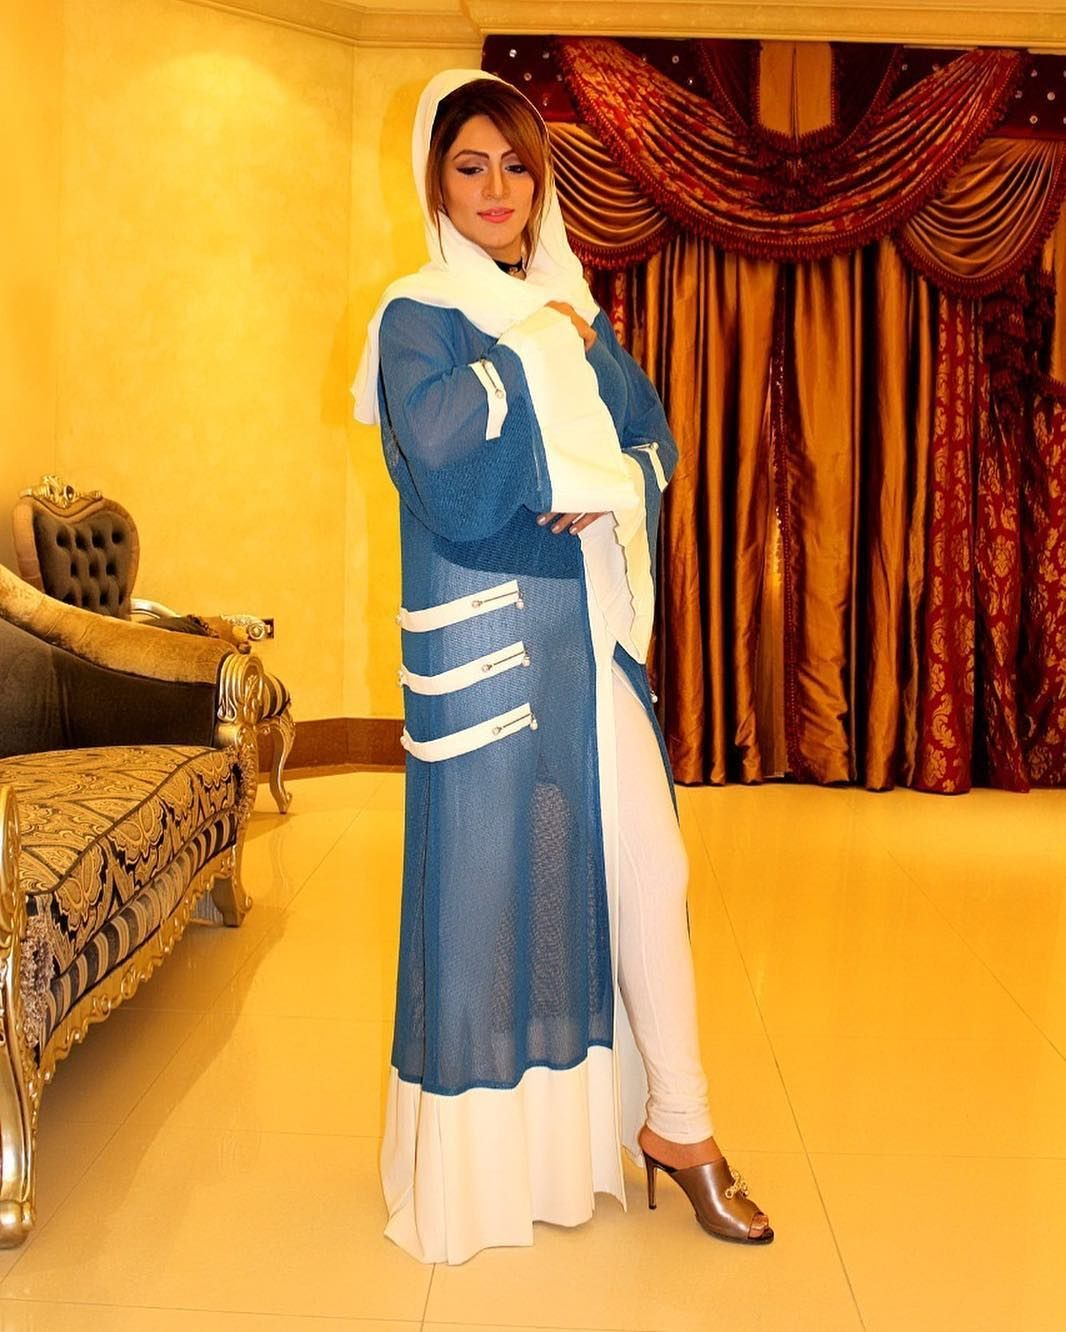 Design No L028 Abaya Materials altebet Al Tebet